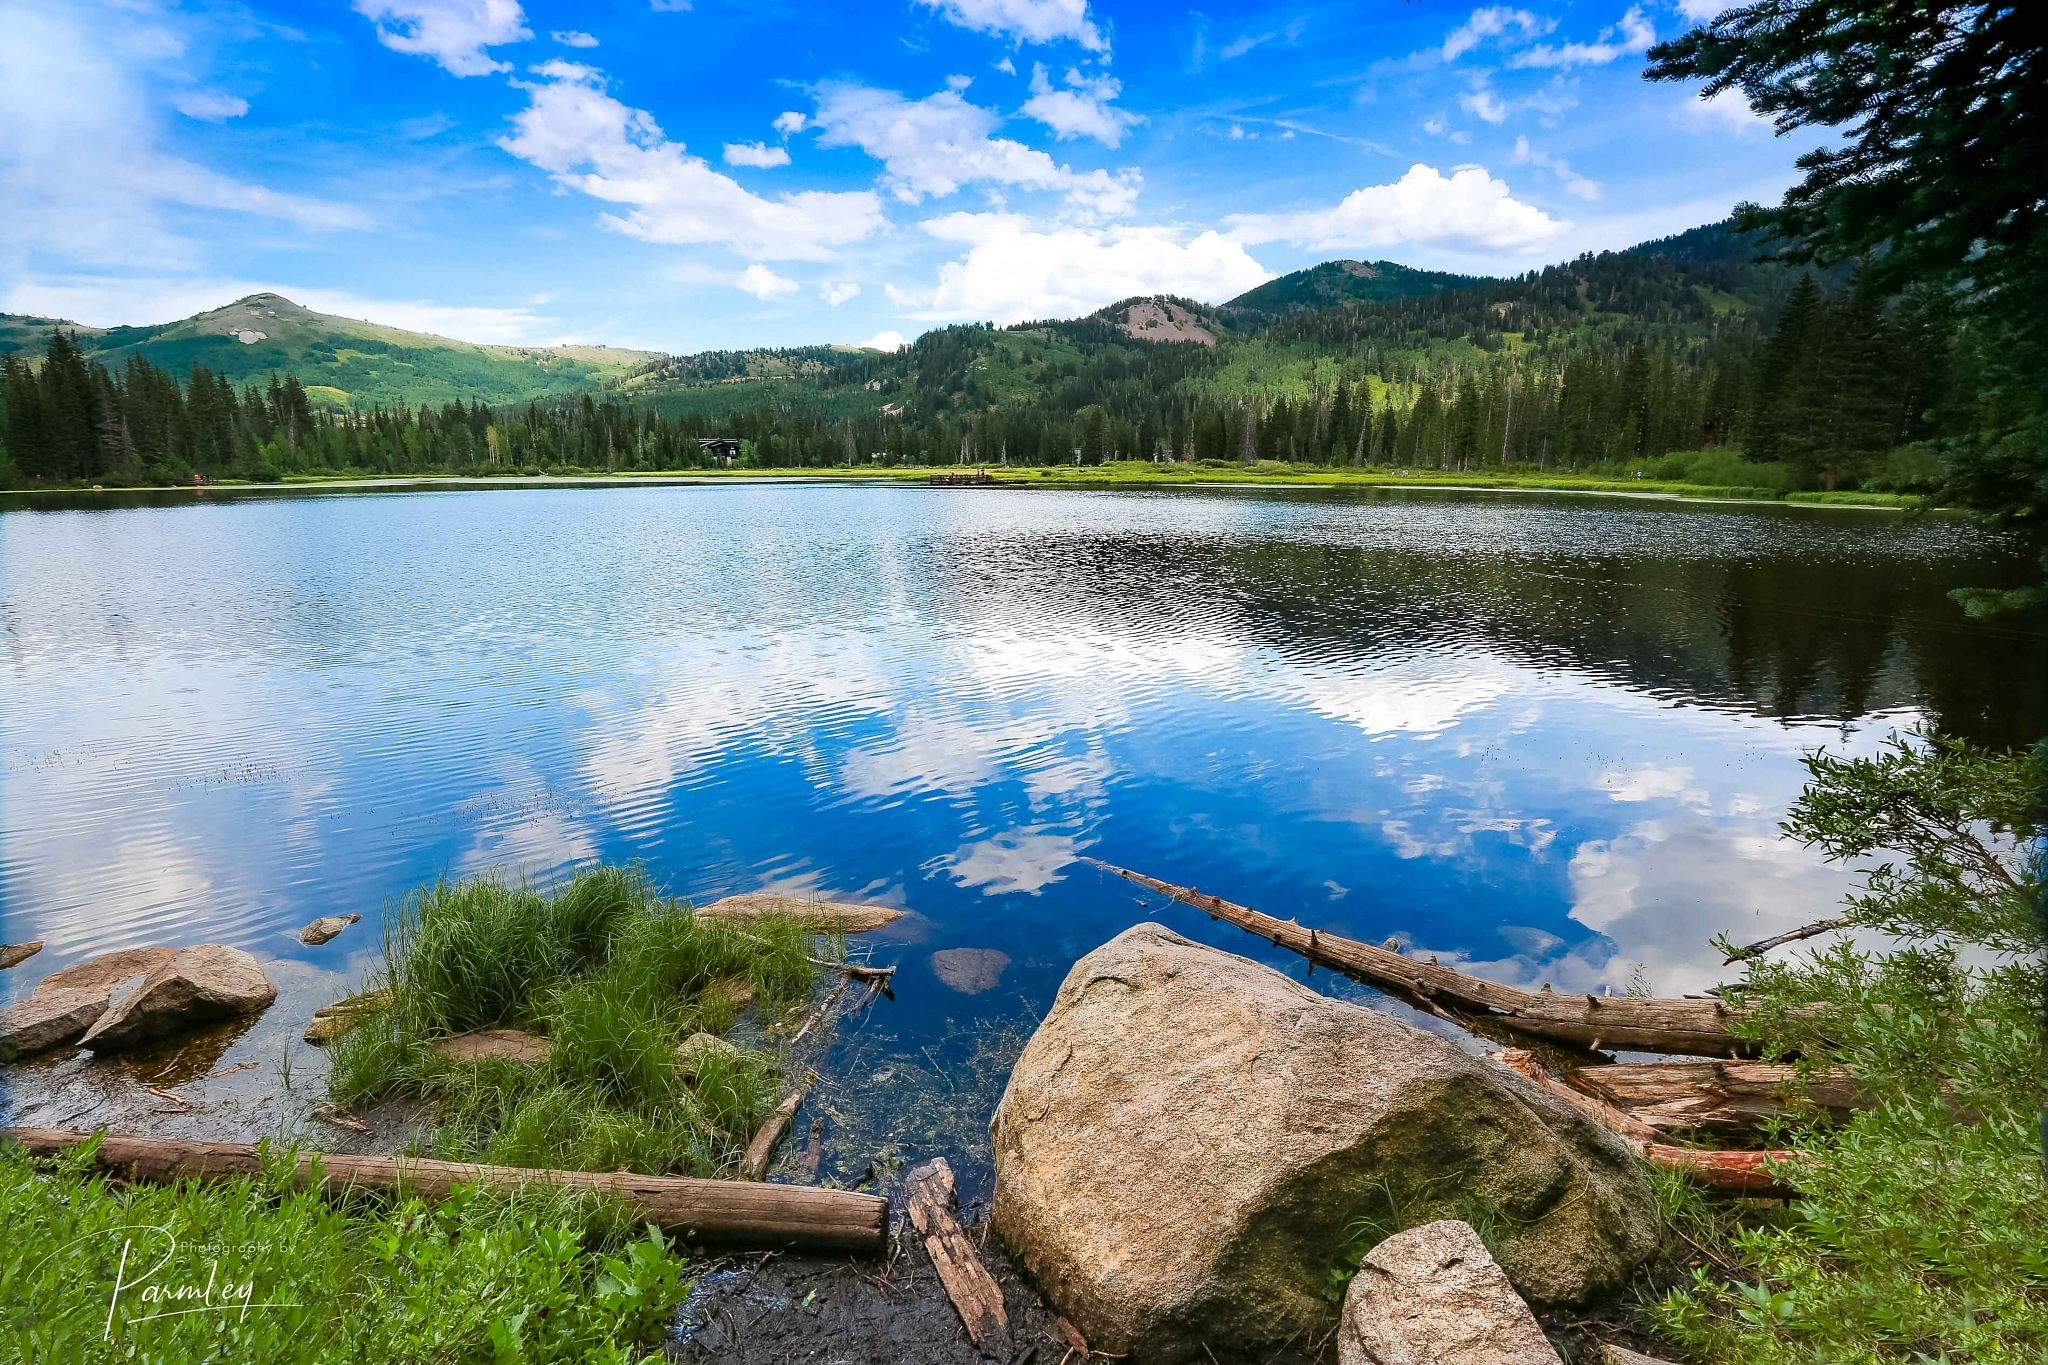 Silver Lake - I by JP Parmley